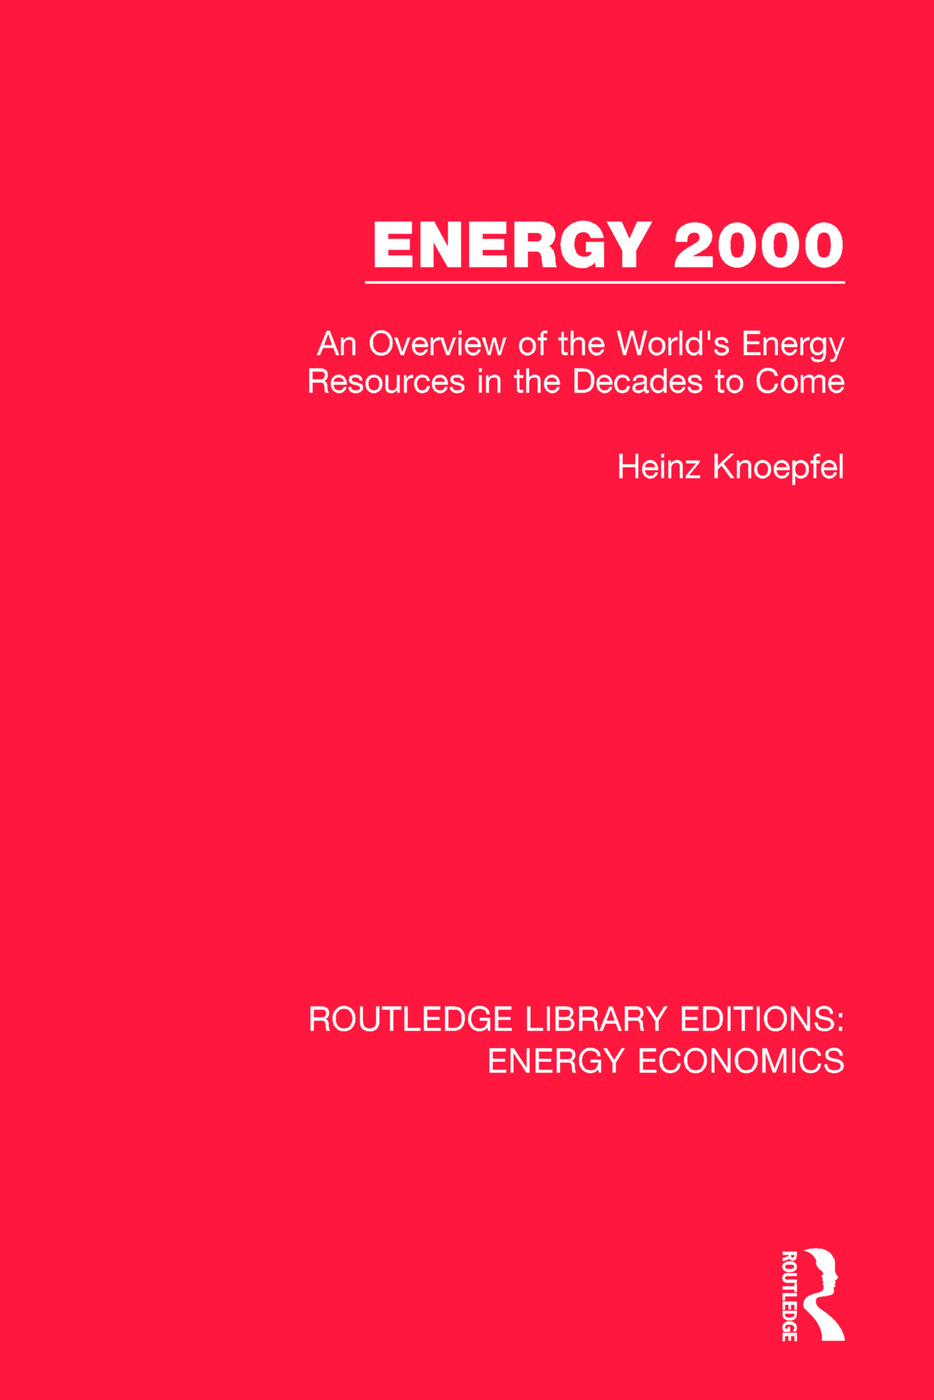 Energy 2000: An Overview of the World's Energy Resources in the Decades to Come book cover